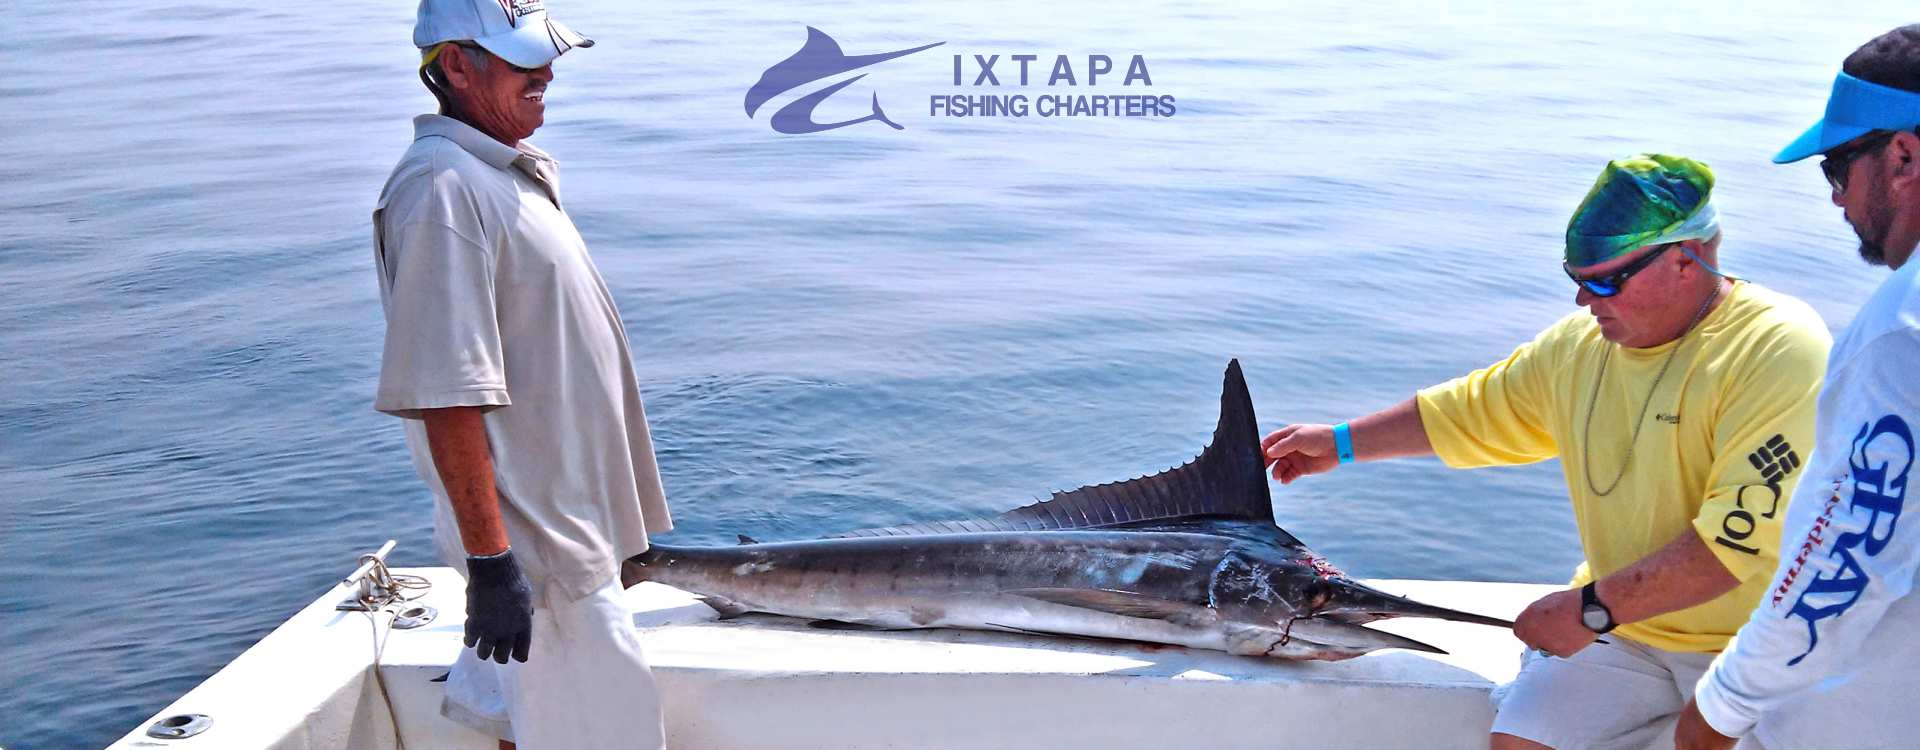 Ixtapa Zihuatanjo Fishing Charters. Sportfishing Charters has selected these fishing charters boats in Ixtapa Zihuatanejo Mexico. Fishing, Deep Sea fishing Or Small Game fishing, For Fly Fishing and Rooster Fishing Martin on Ixtapa Zihuatanejo Mexico. Best Sport Fishing Charters in Ixtapa Zihuatanejo Mexico